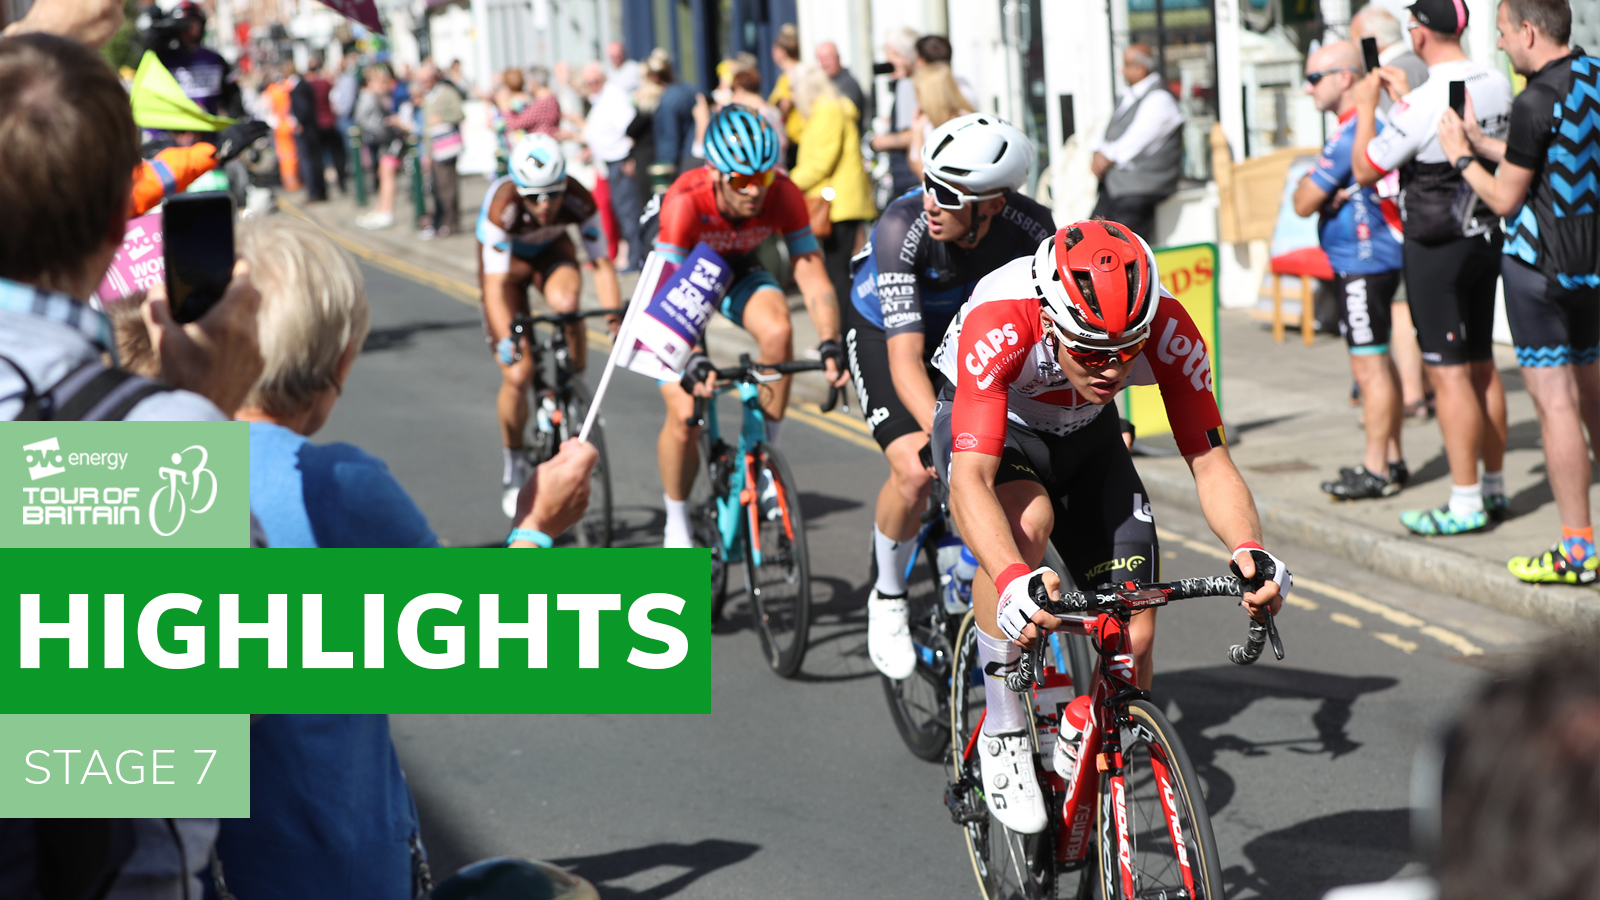 Tour of Britain highlights